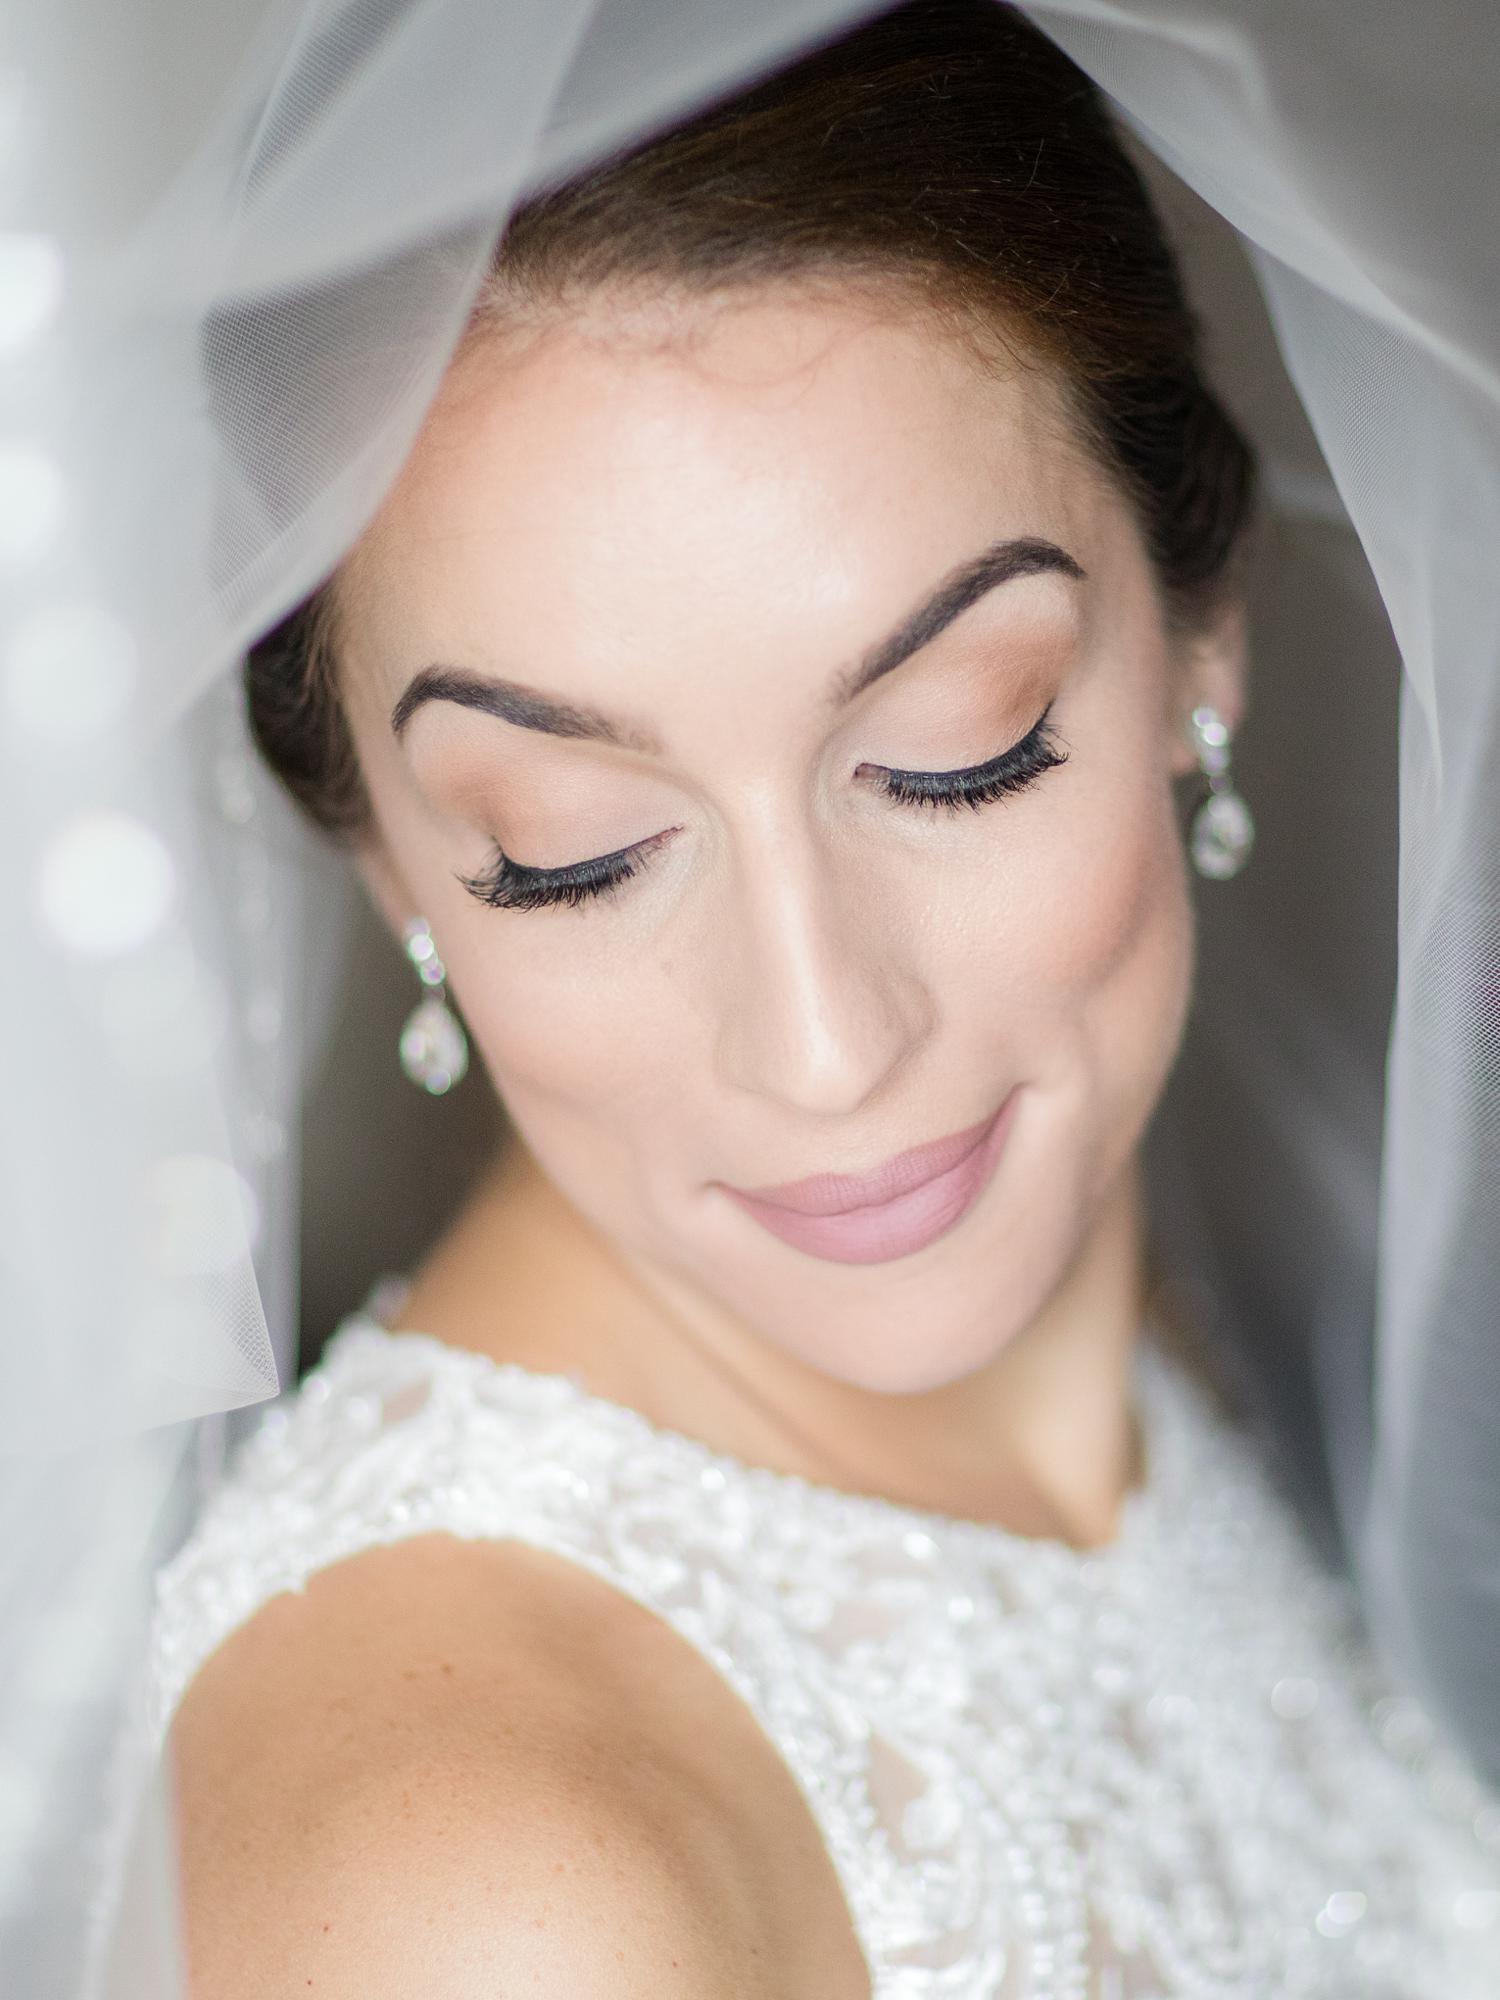 Bridal portrait at Perona Farms with wedding makeup by Make Me Up Eva.